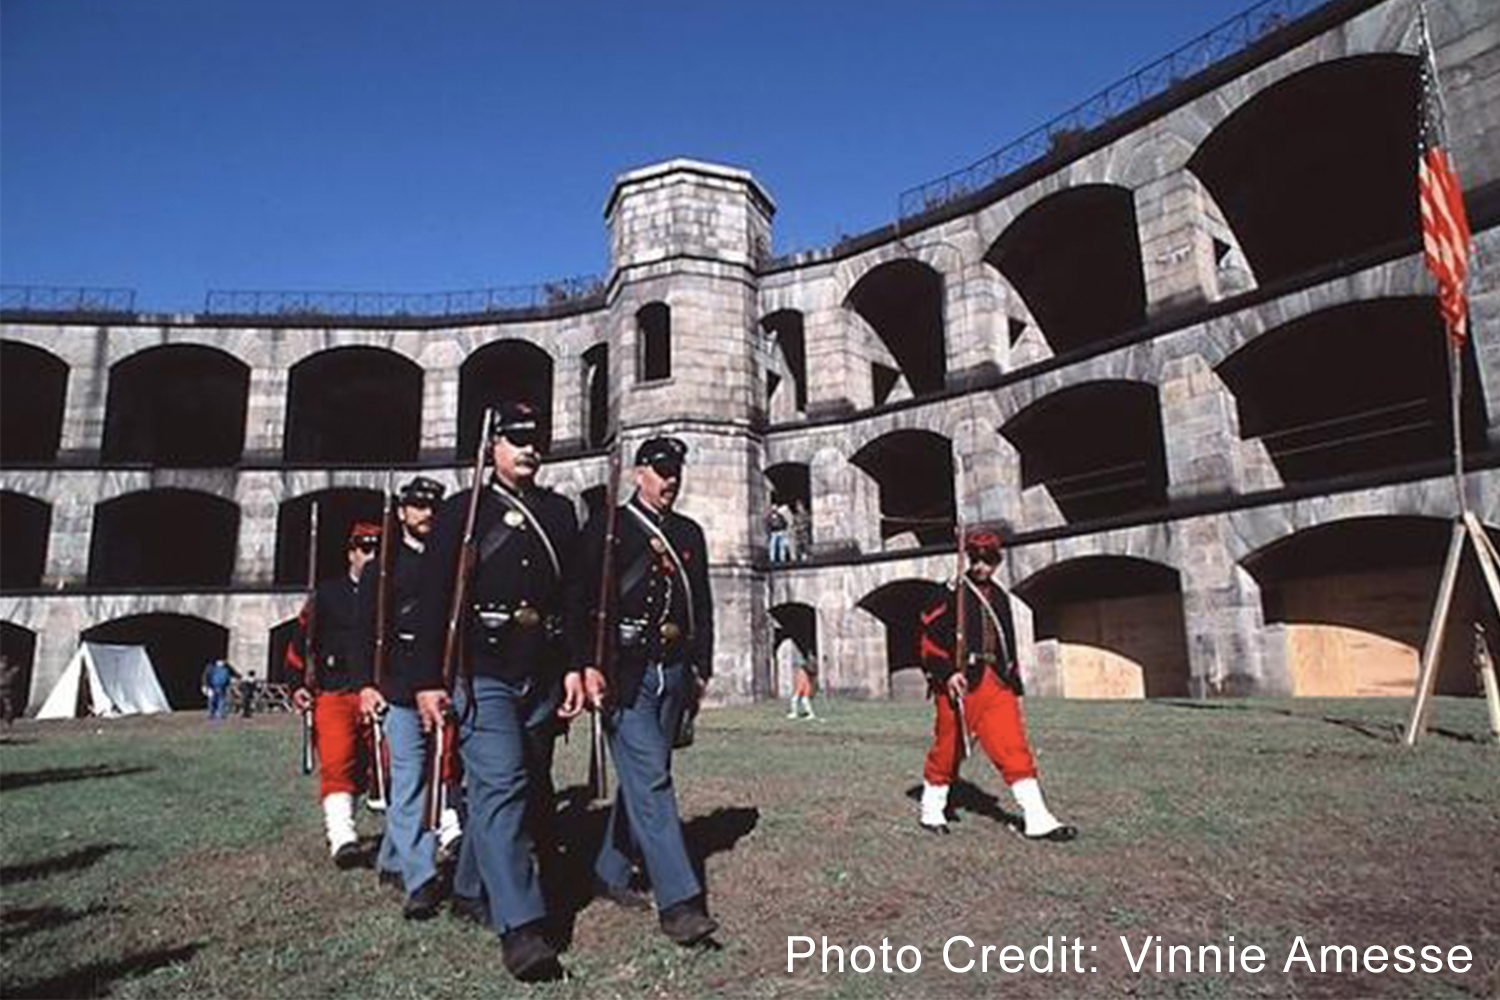 Fort Wadsworth - One of the oldest military forts in the nation, Fort Wadsworth is now a 226-acre public park providing a unique historical experience and beautiful views of New York Harbor.210 New York Avenue, Staten Island, NY 10305nycgo.com/venues/fort-wadsworth-staten-island